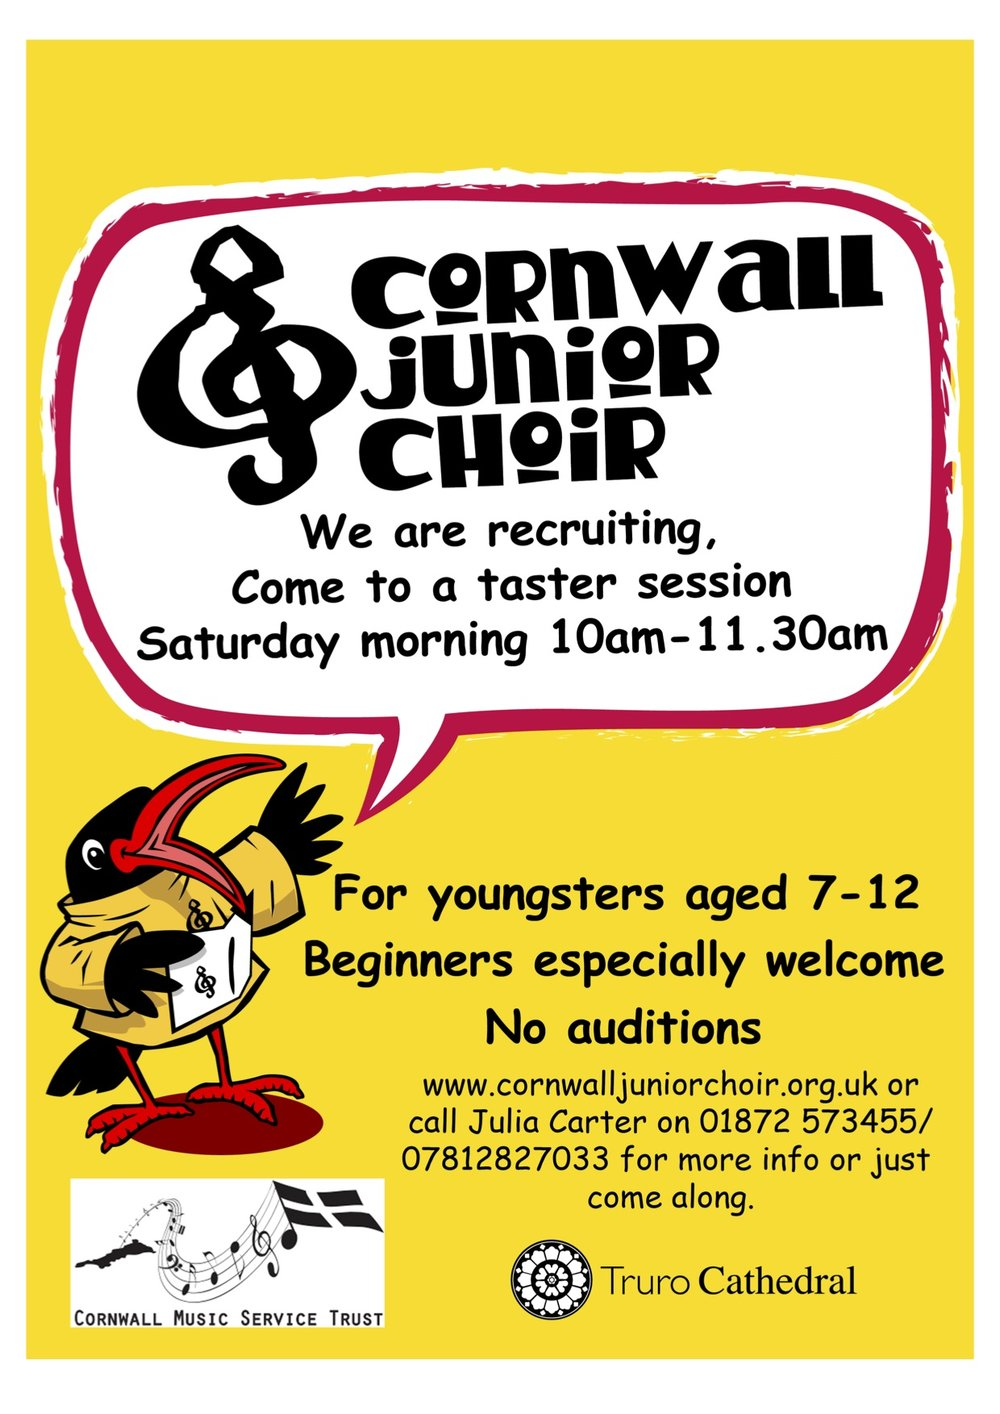 Cornwall Junior Choirposter pdf.jpg